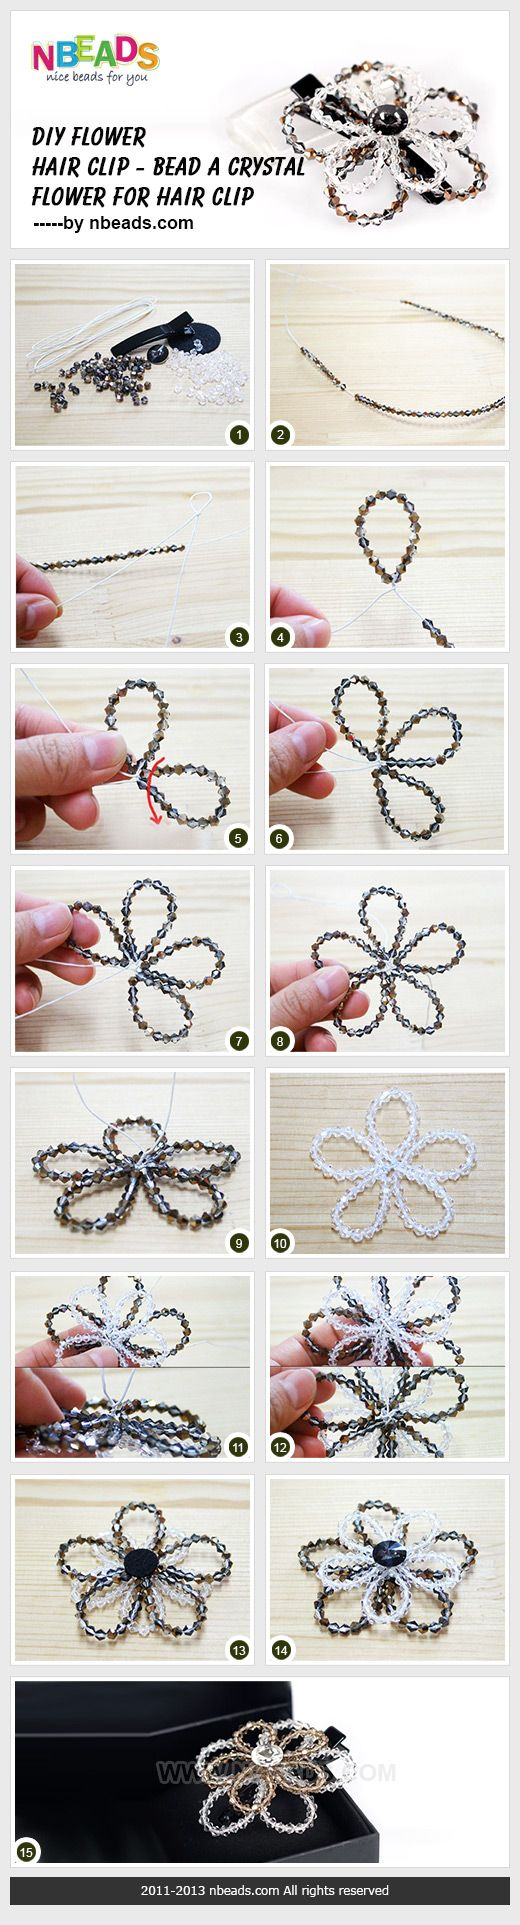 FROM nbeads.com: DIY flower hair clip - bead a crystal flower for hair clip